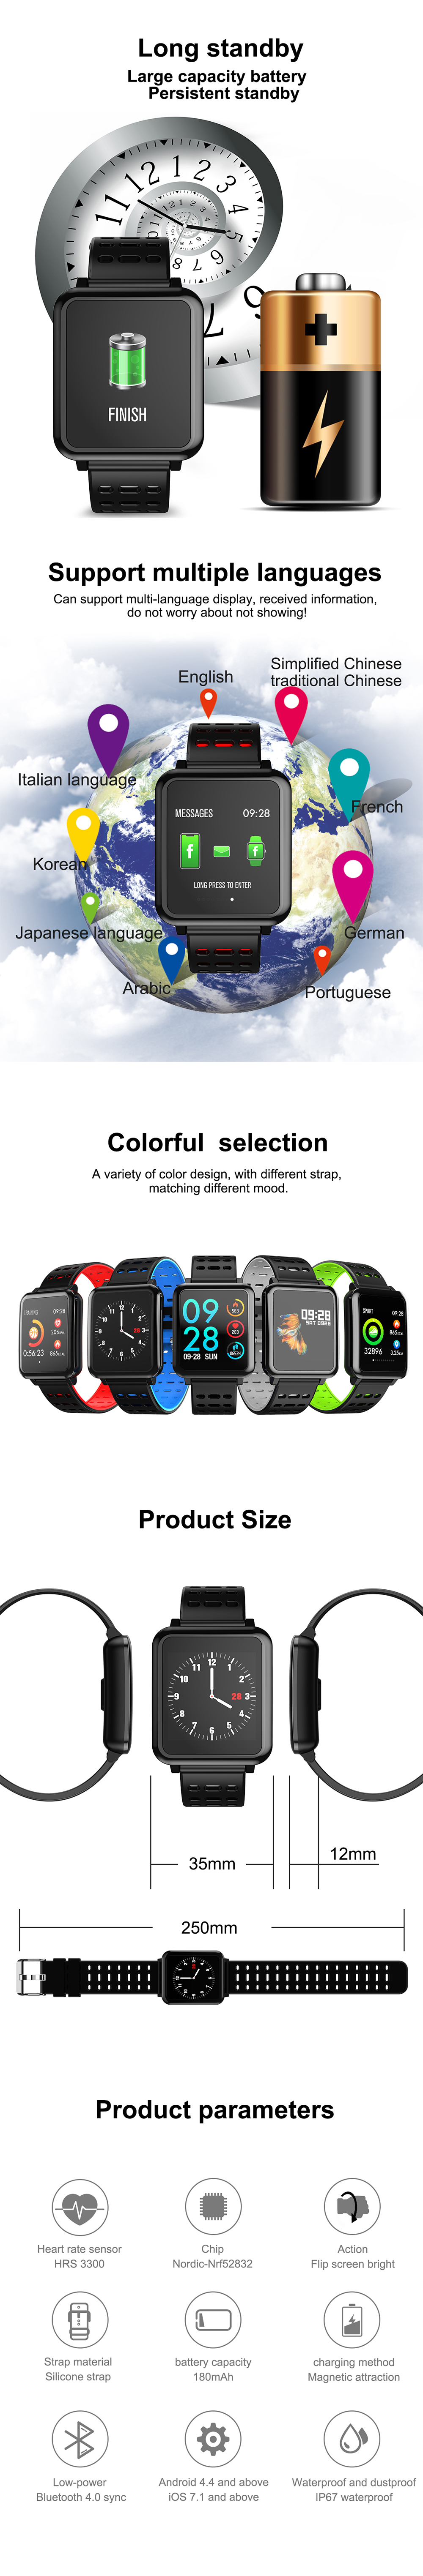 Bakeey-T2-Brightness-Weather-Music-HR-Blood-Pressure-Oxygen-Call-Messages-Remind-Smart-Watch-1353737